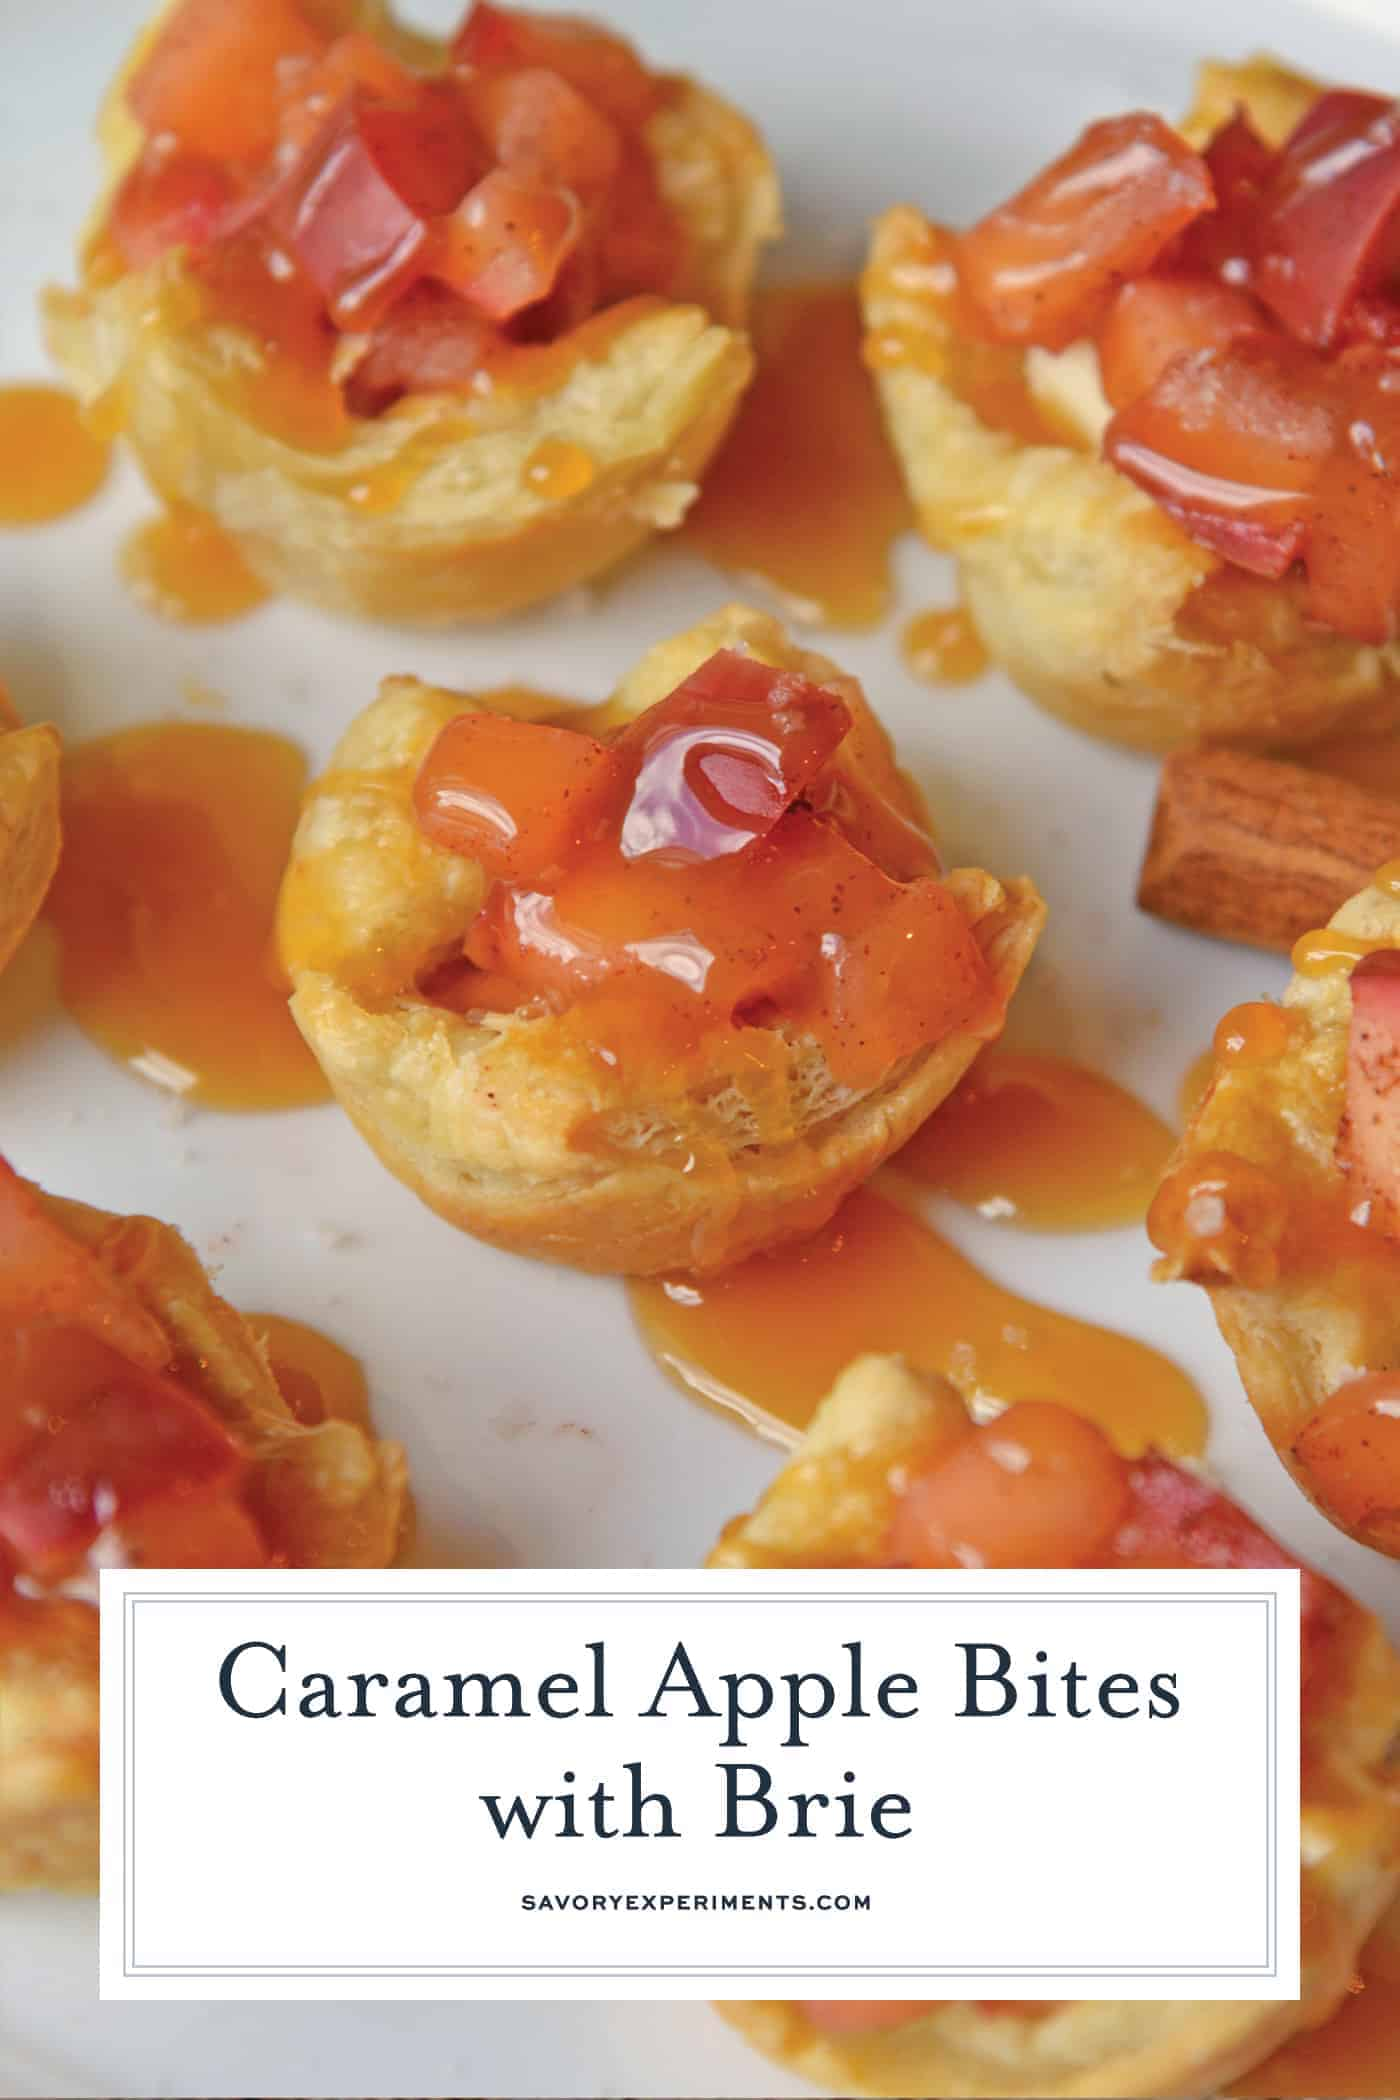 Caramel Apple Bites with Brie are a quick apple tart recipe using puff pastry. The best mix between mini caramel apples and salted caramel apple pie! #caramelapplebites #minicaramelapples www.savoryexperiments.com